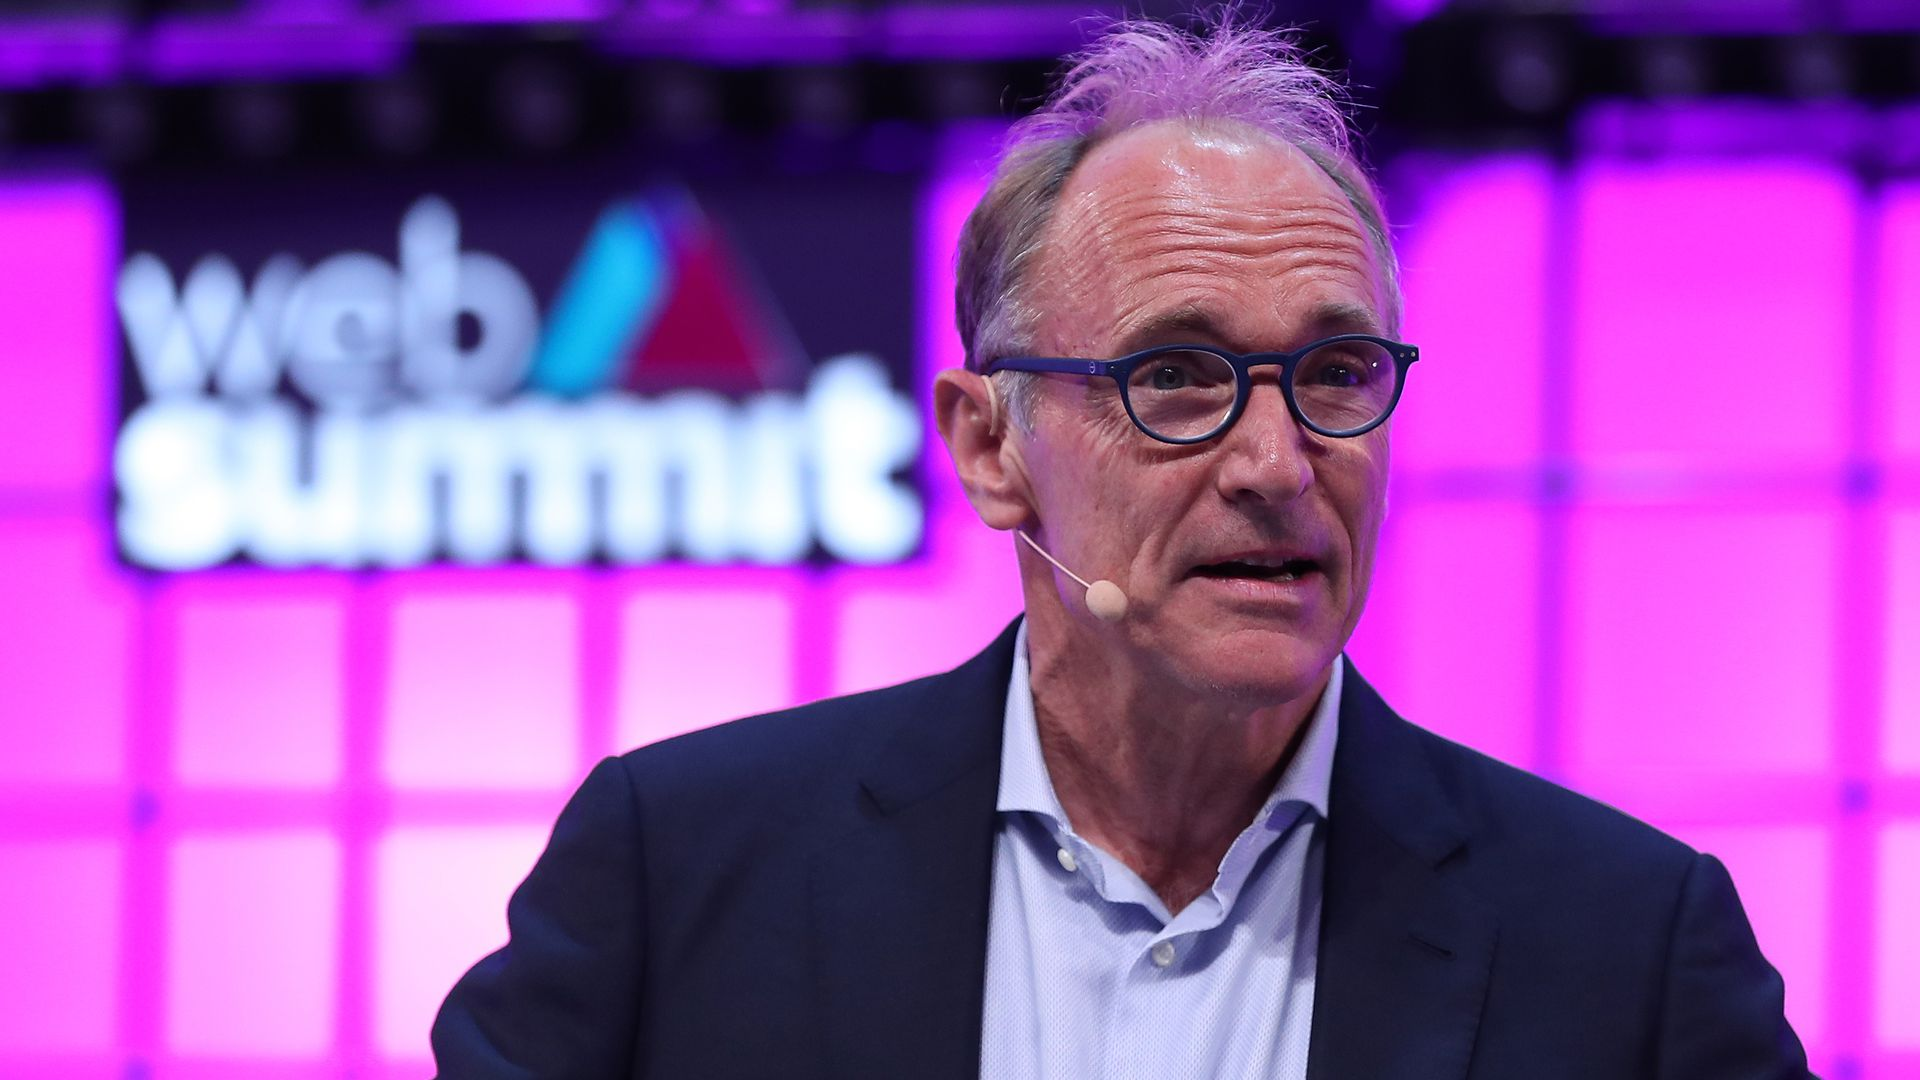 World Wide Web's Inventor and Web Foundation's Founding Director Tim Berners-Lee speaks during the Web Summit 2018 in Lisbon, Portugal on November 5, 2018.